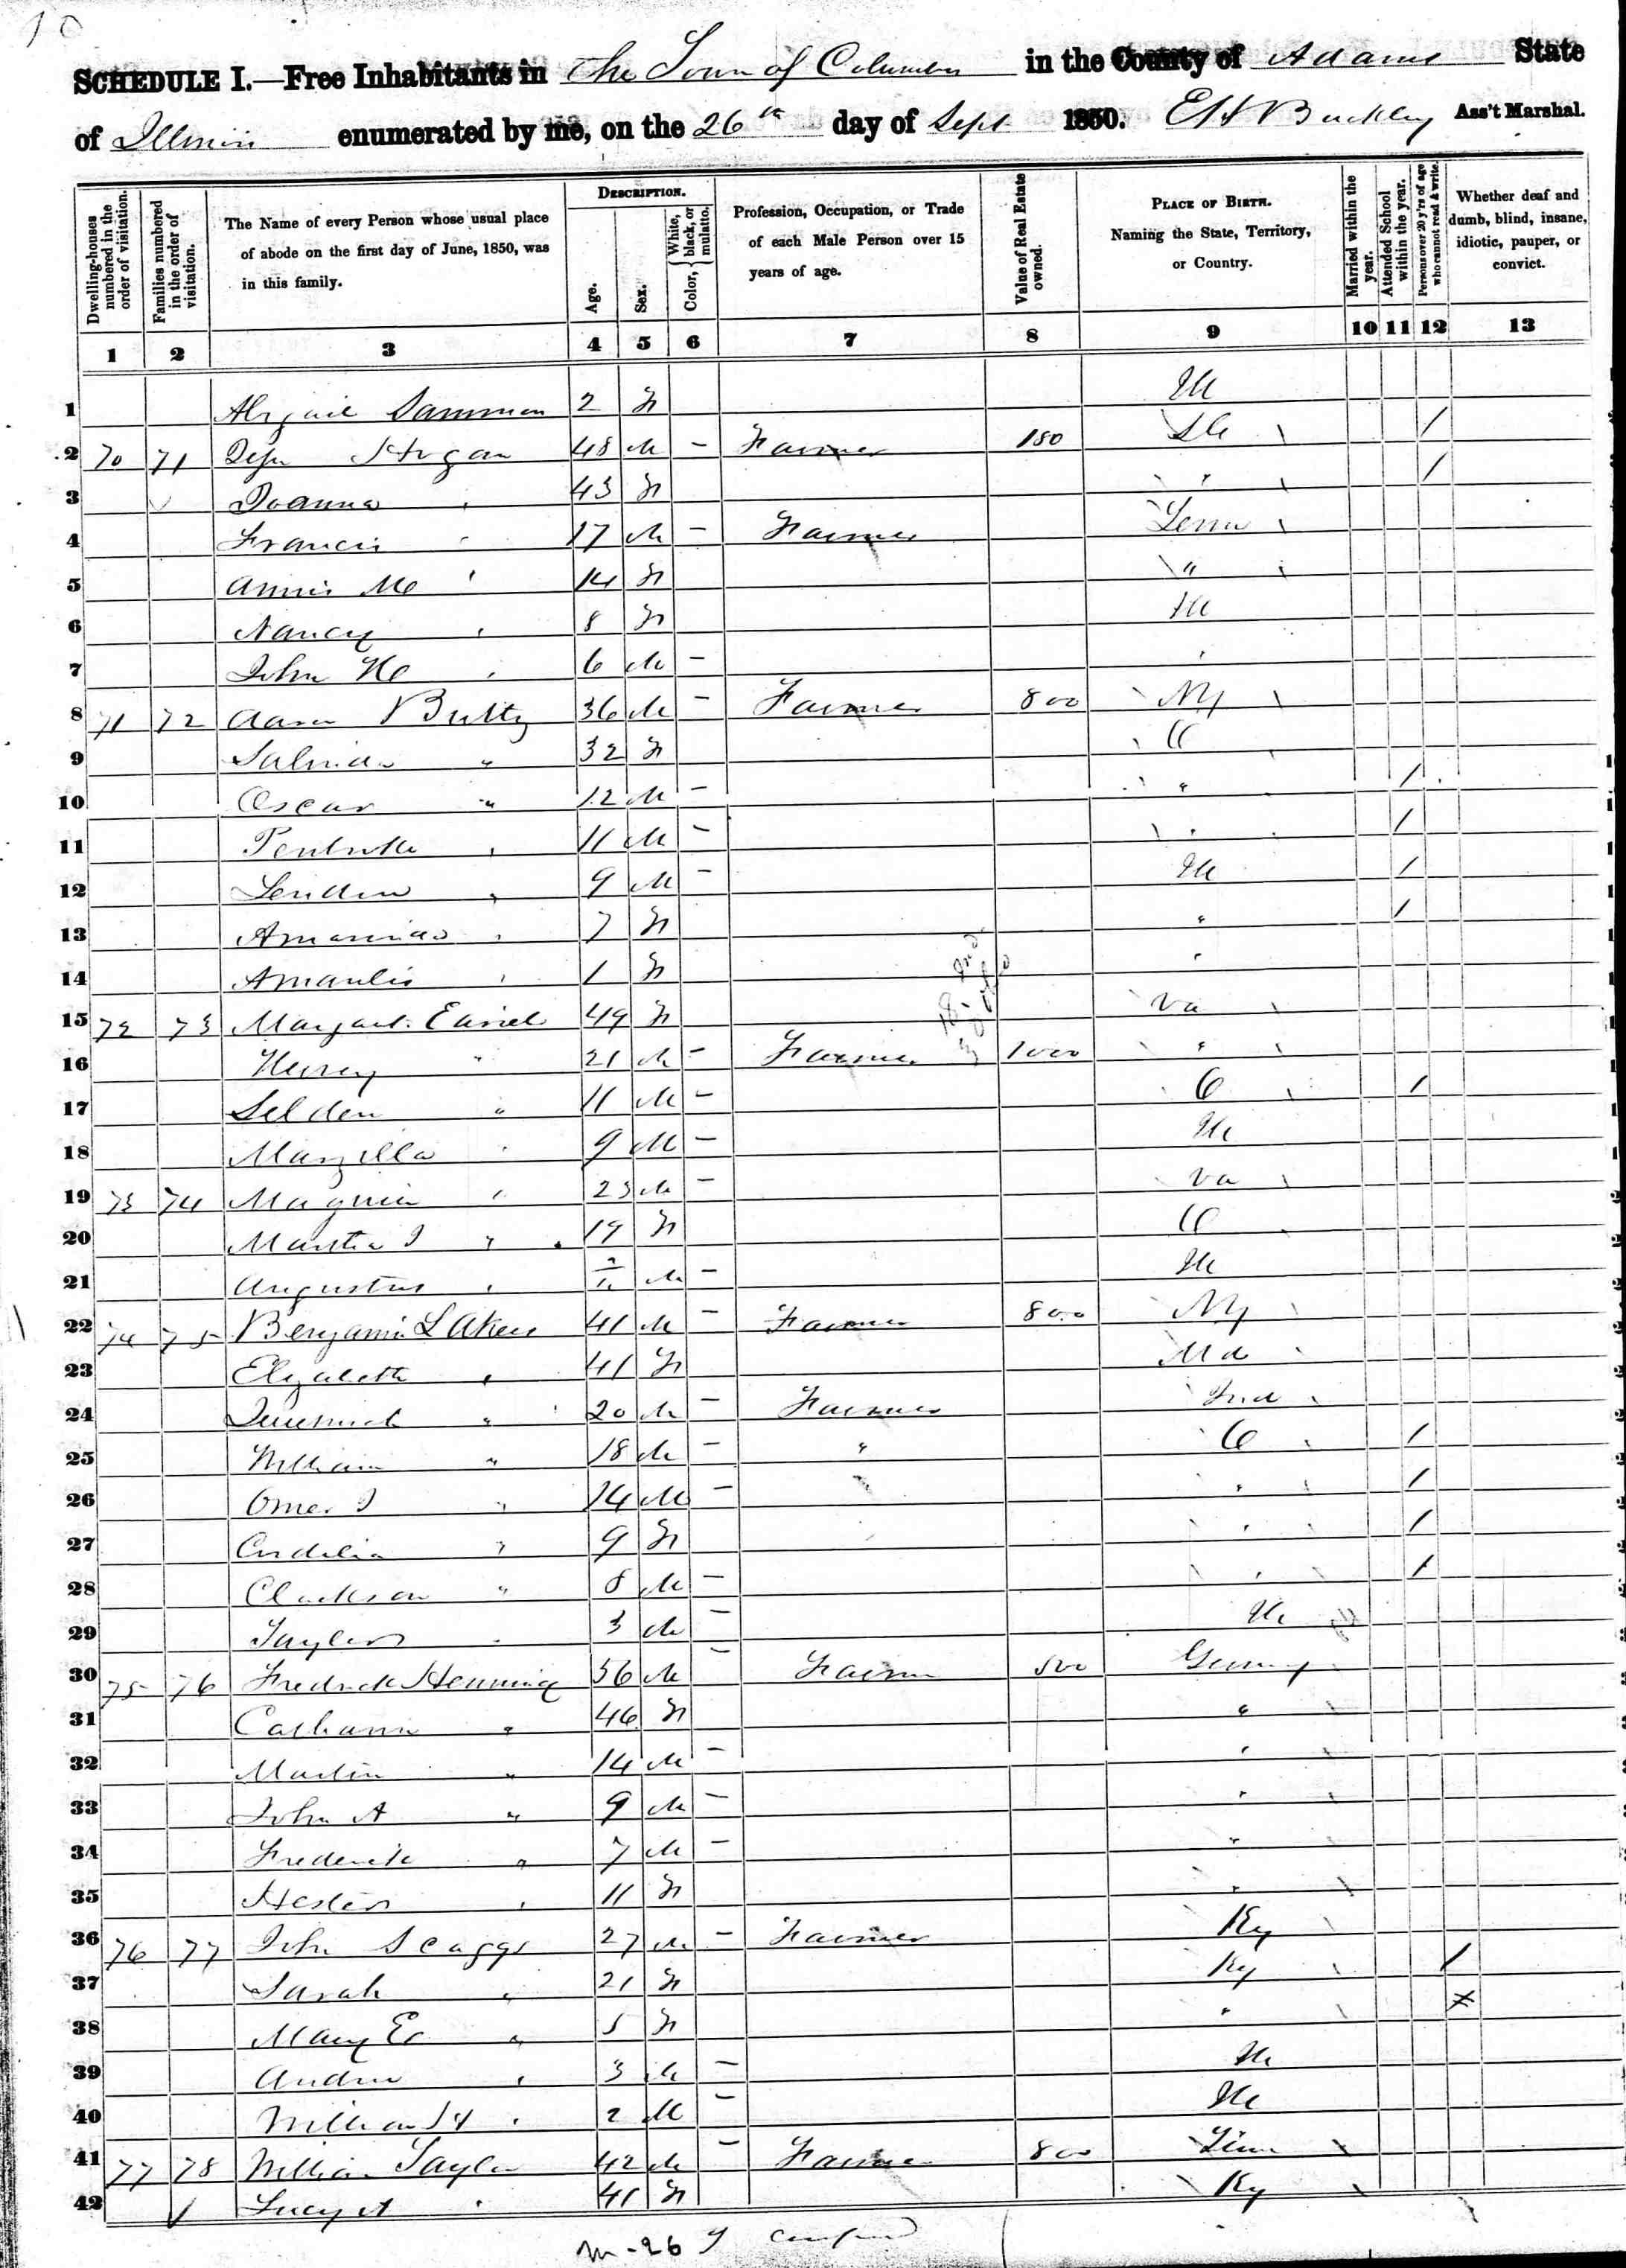 Illinois adams county fowler - 1850 U S Census Of Adams County Illinois Town Of Columbus Taken On 26 Sept 1850 Roll 97 Book 1 Page 048b Dwelling 75 Family 76 Frederick